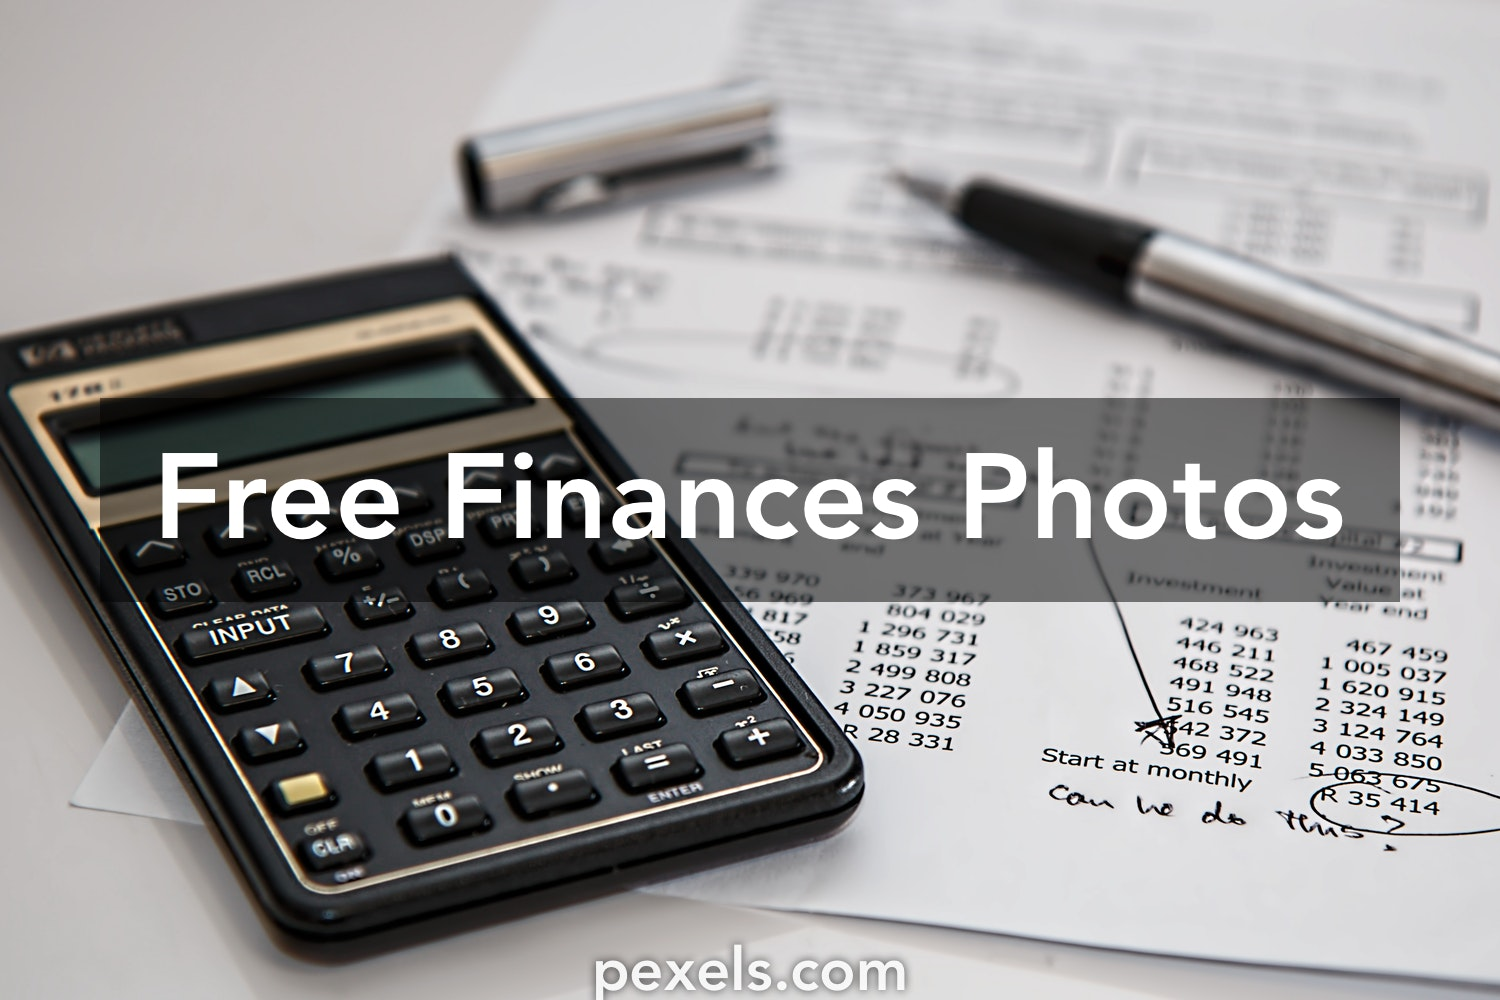 Free stock photos of finances · Pexels